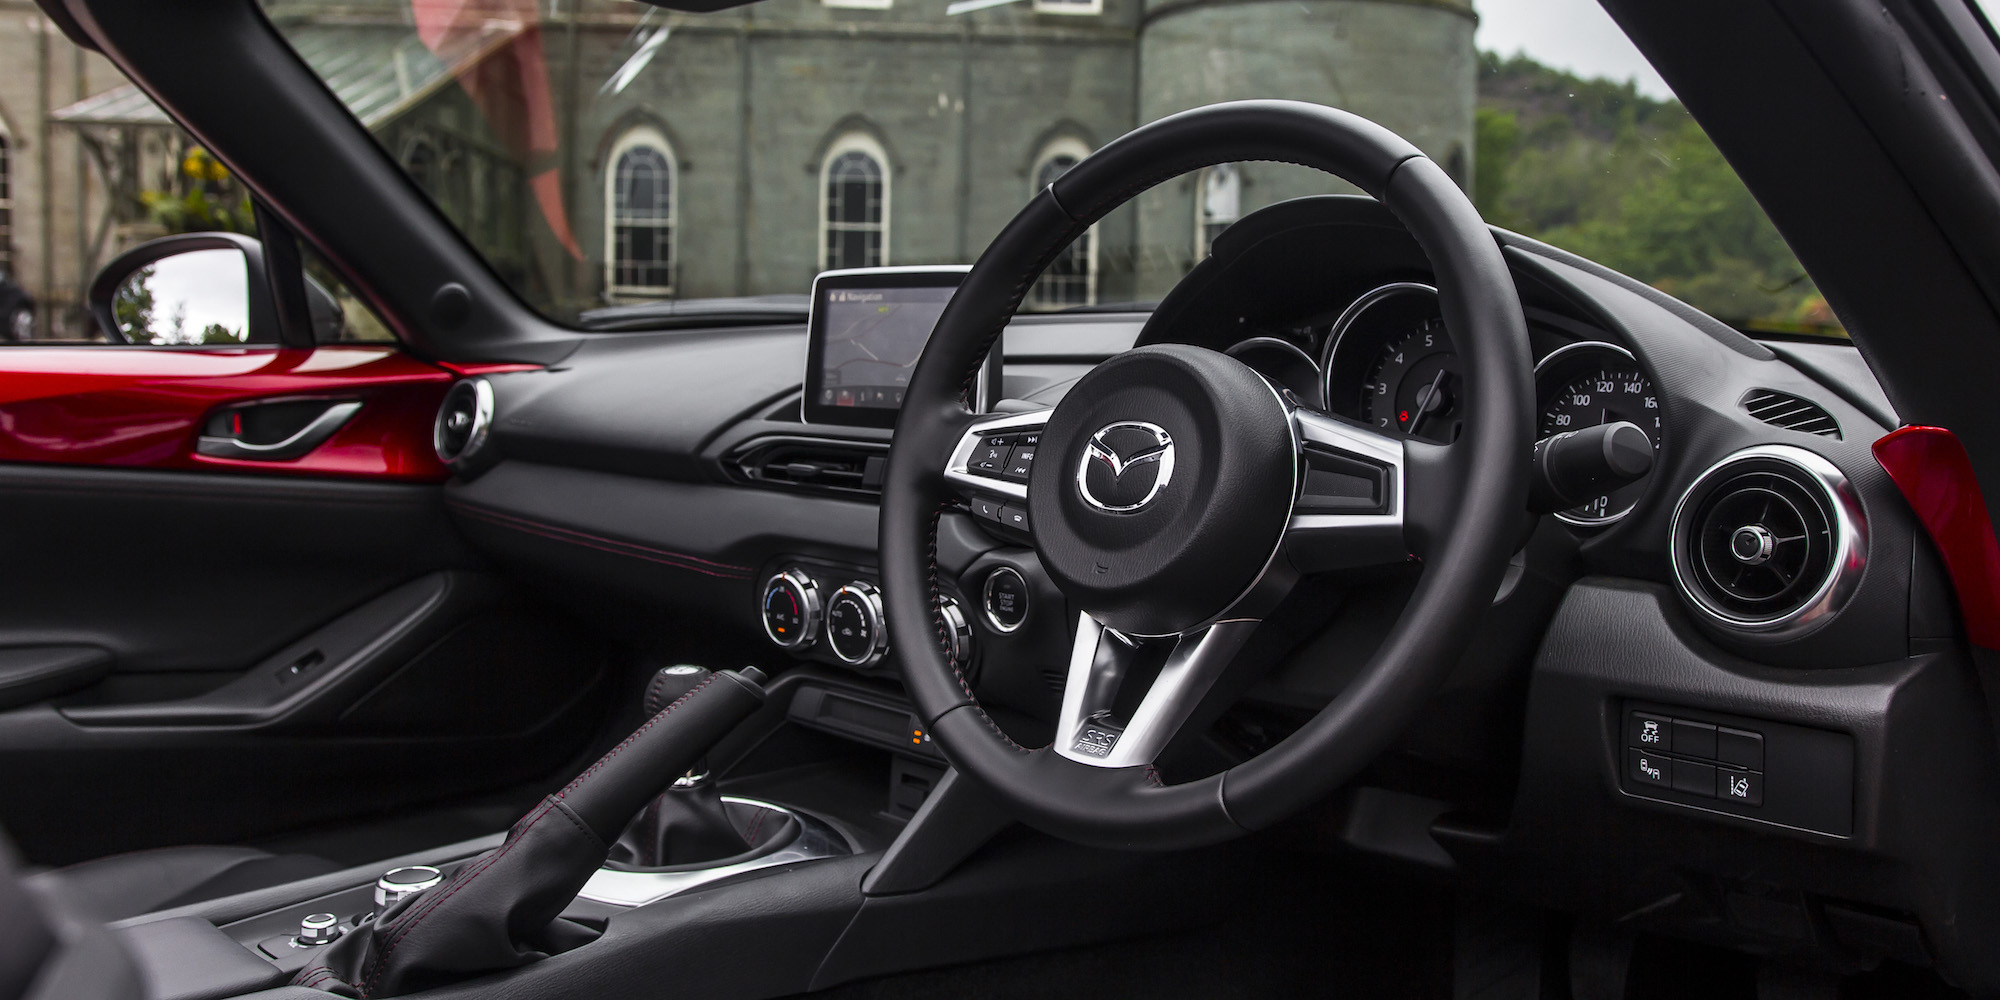 2016 Mazda Mx 5 Cockpit Interior (View 13 of 31)